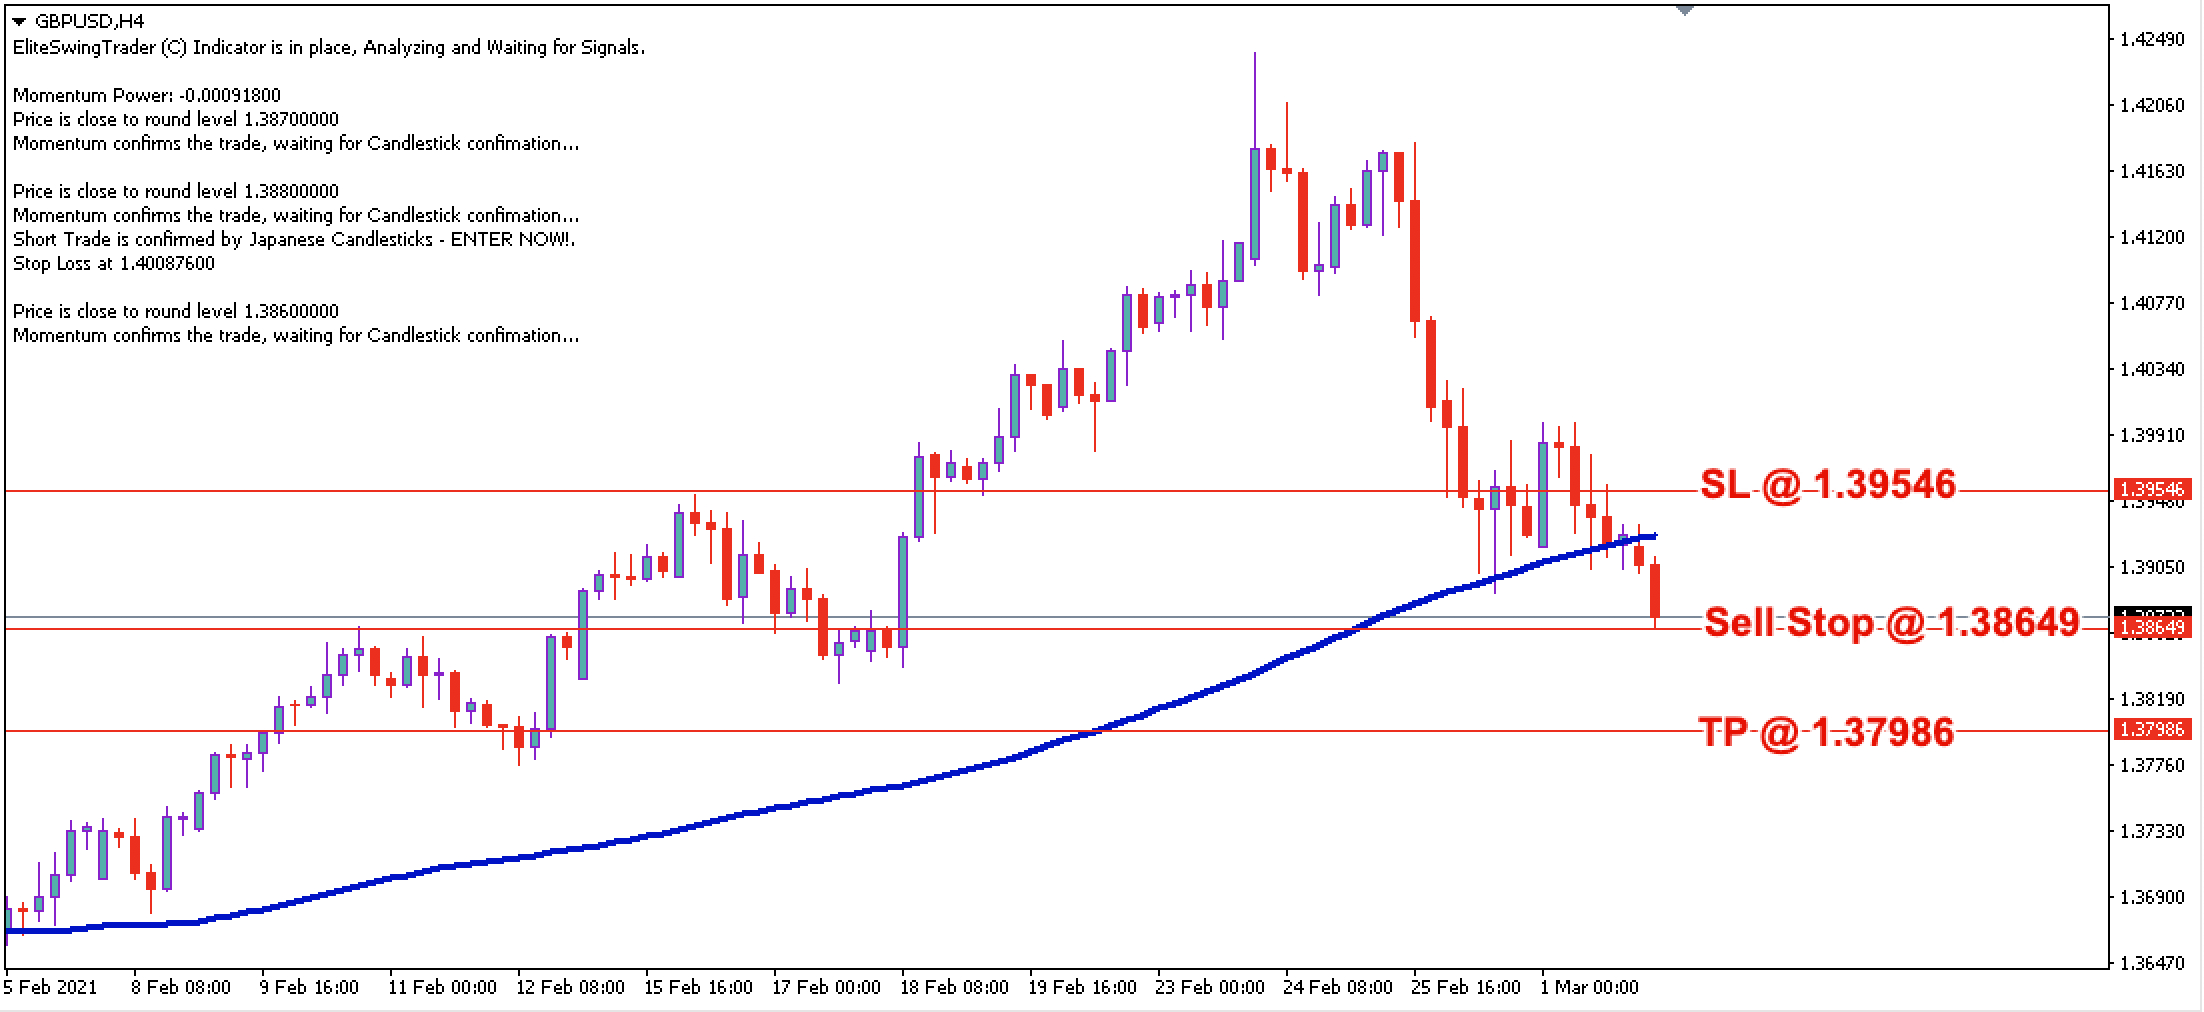 GBP/USD Daily Price Forecast - 2nd March 2021